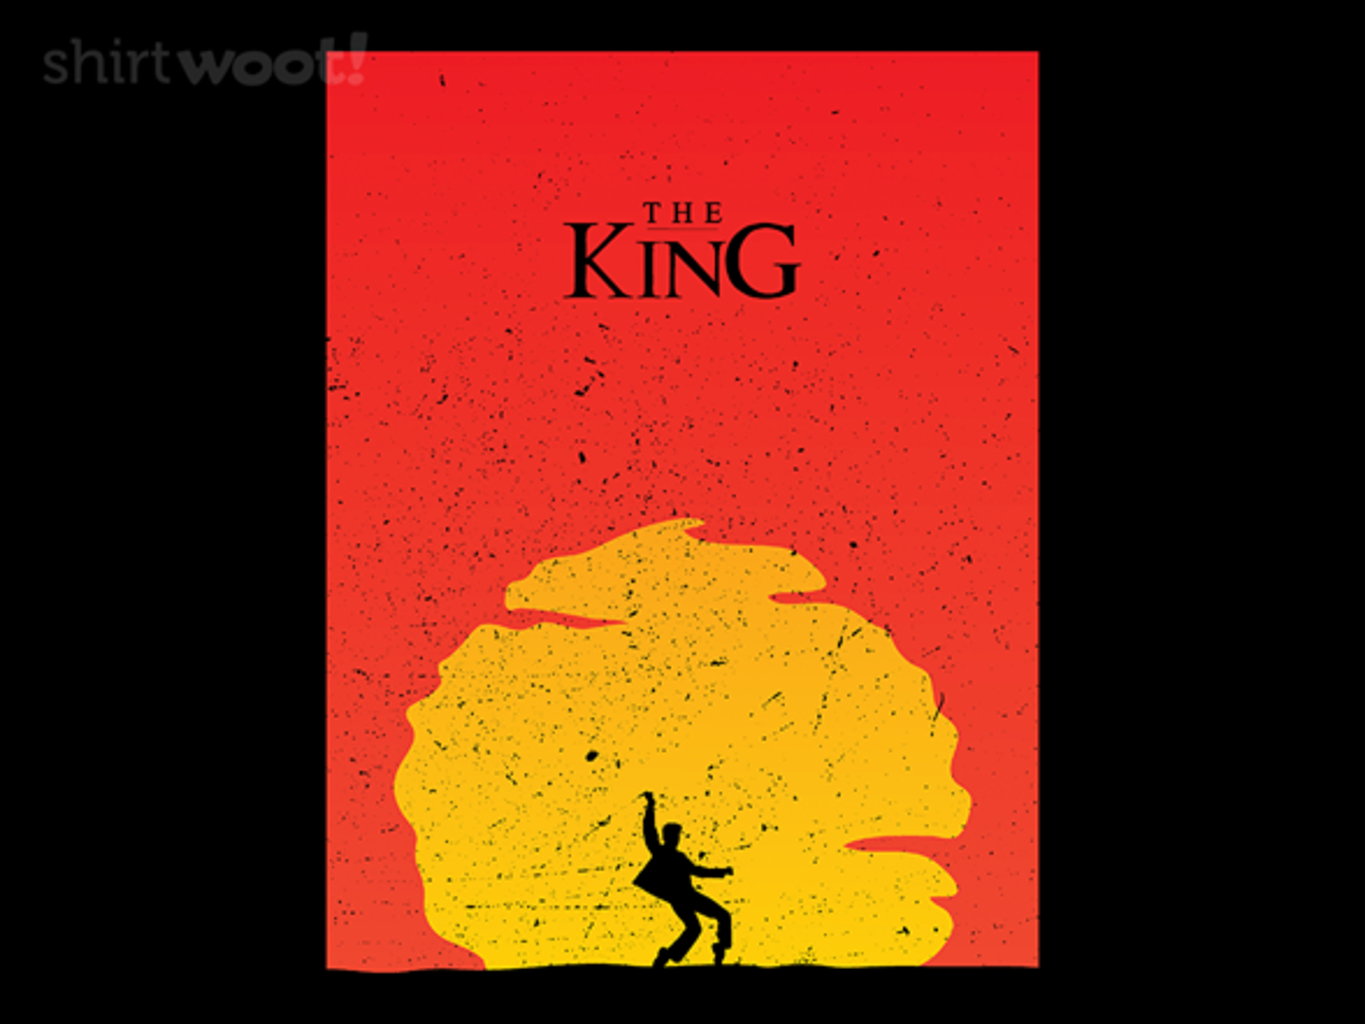 Woot!: The King